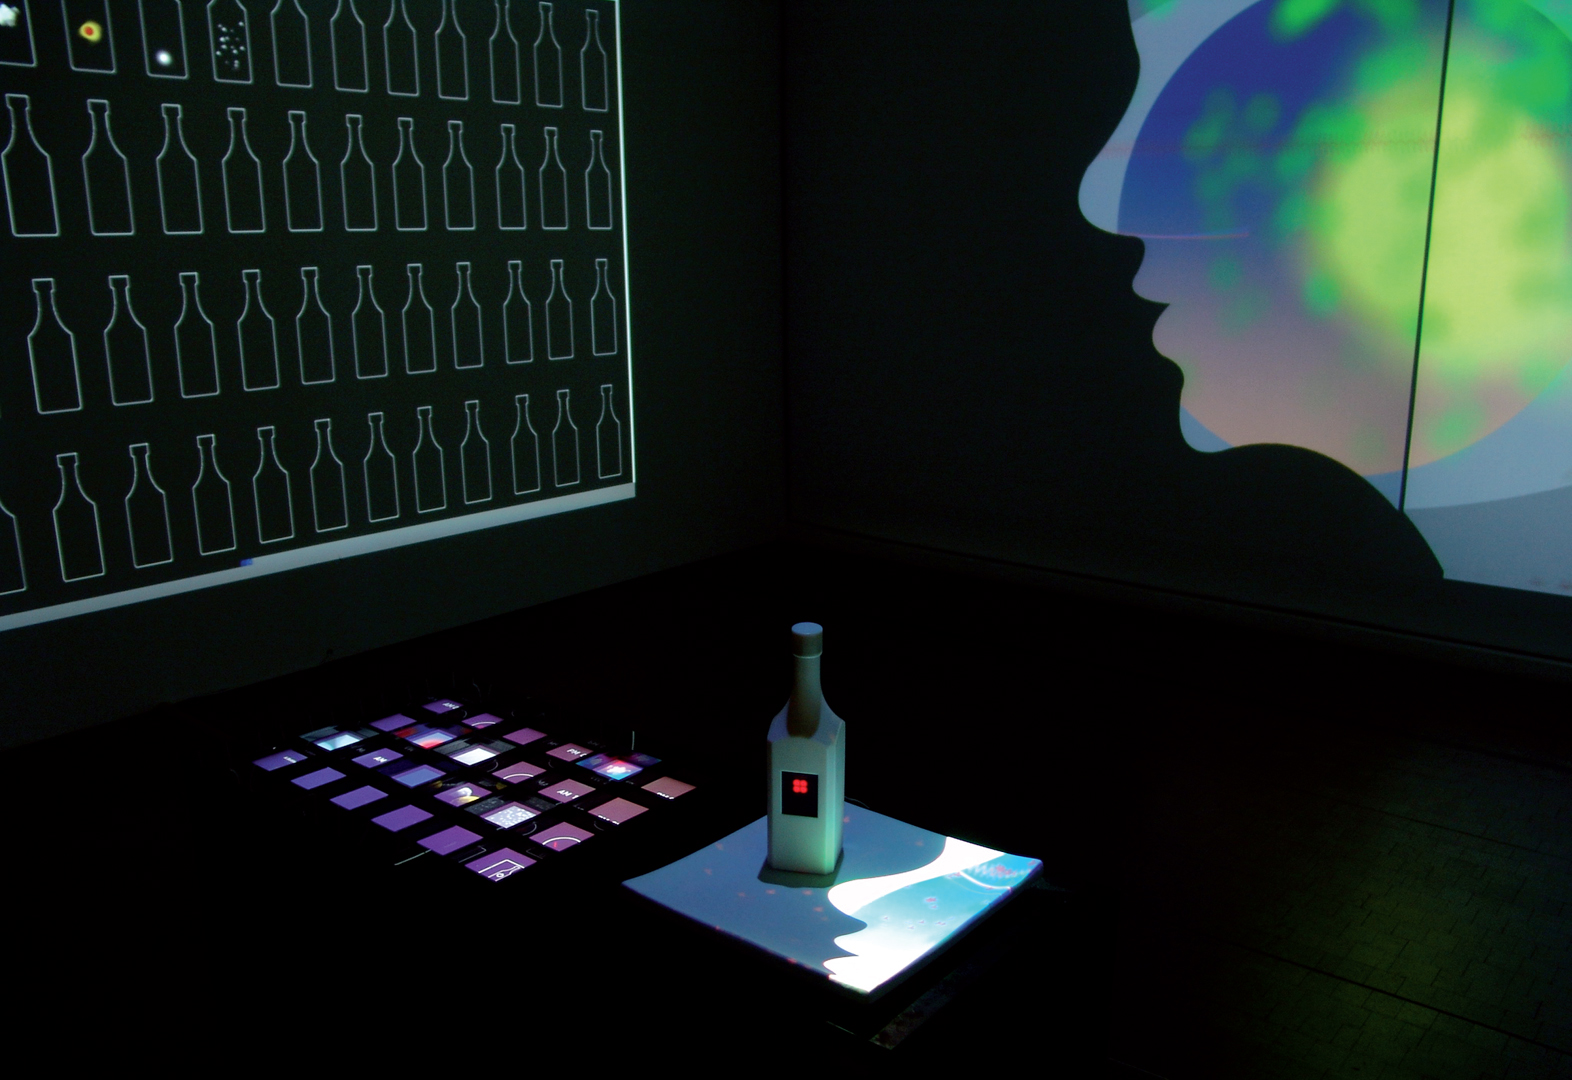 ©, Zune Lee, Chang Young Lim, and Sangwon Nam, A Bottle of Weather